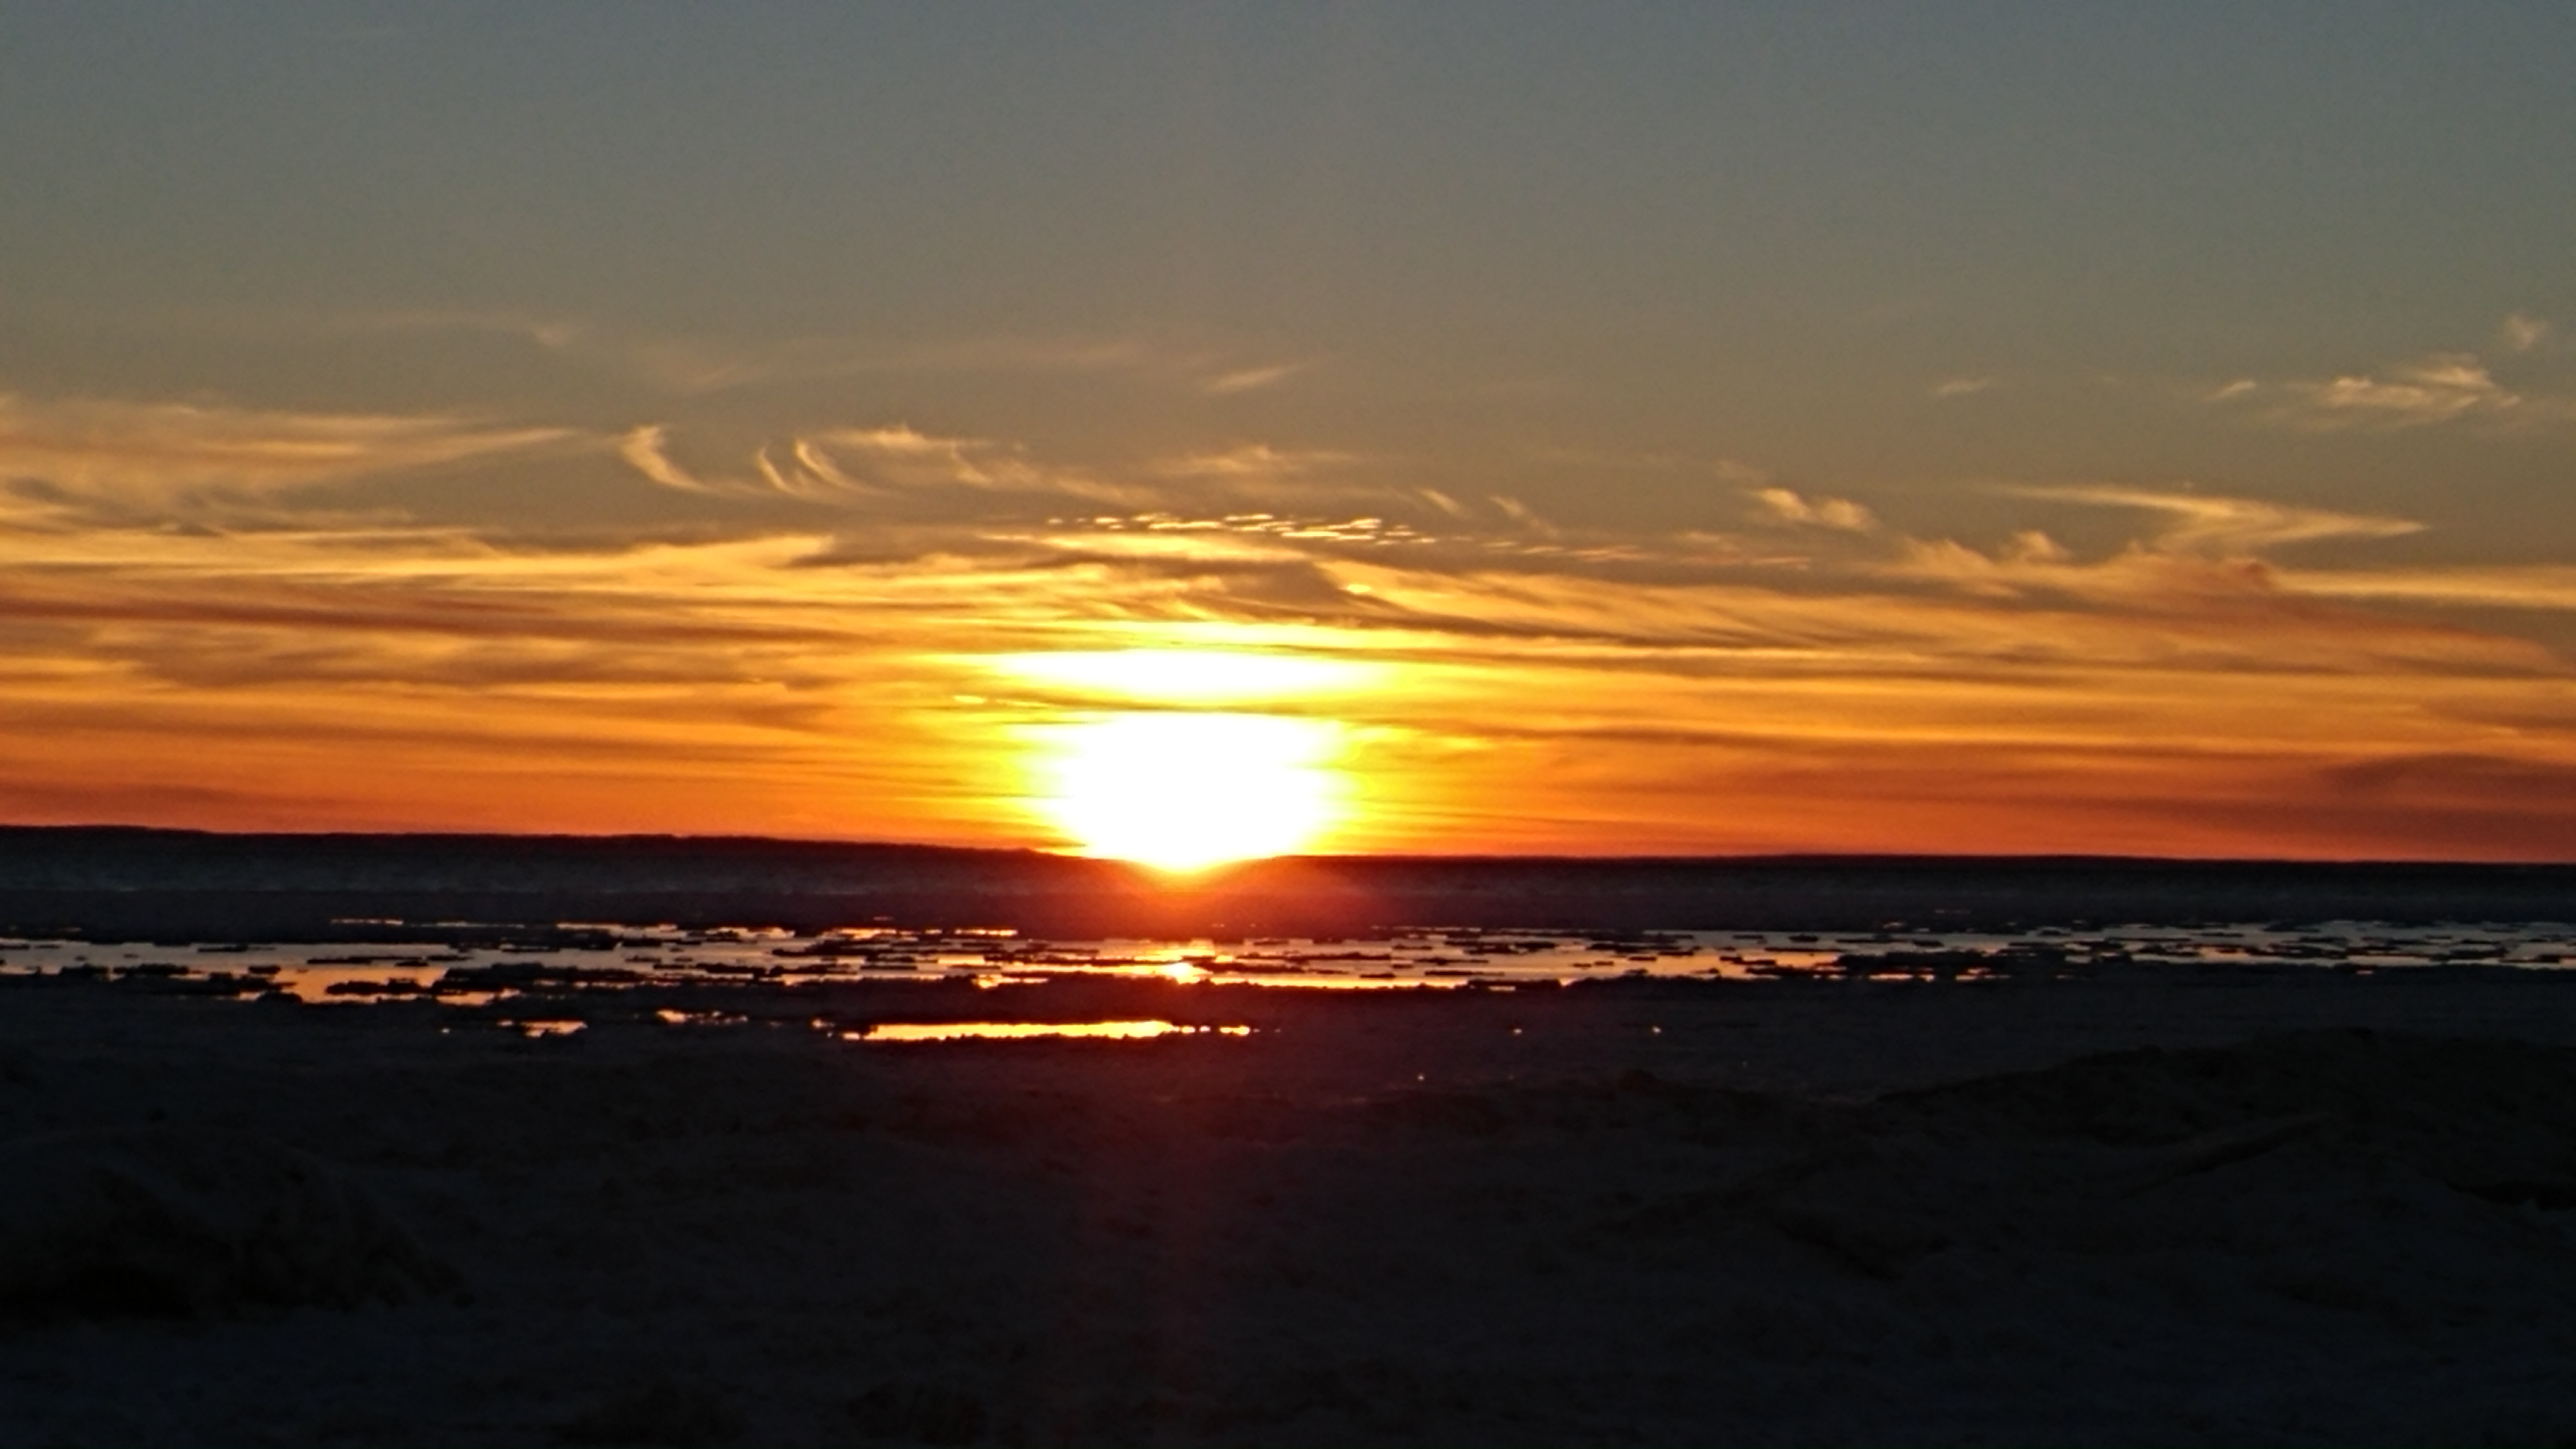 Cawaja Sunset Over the Ice Flow, Winter 2019 Photo by John Vessio